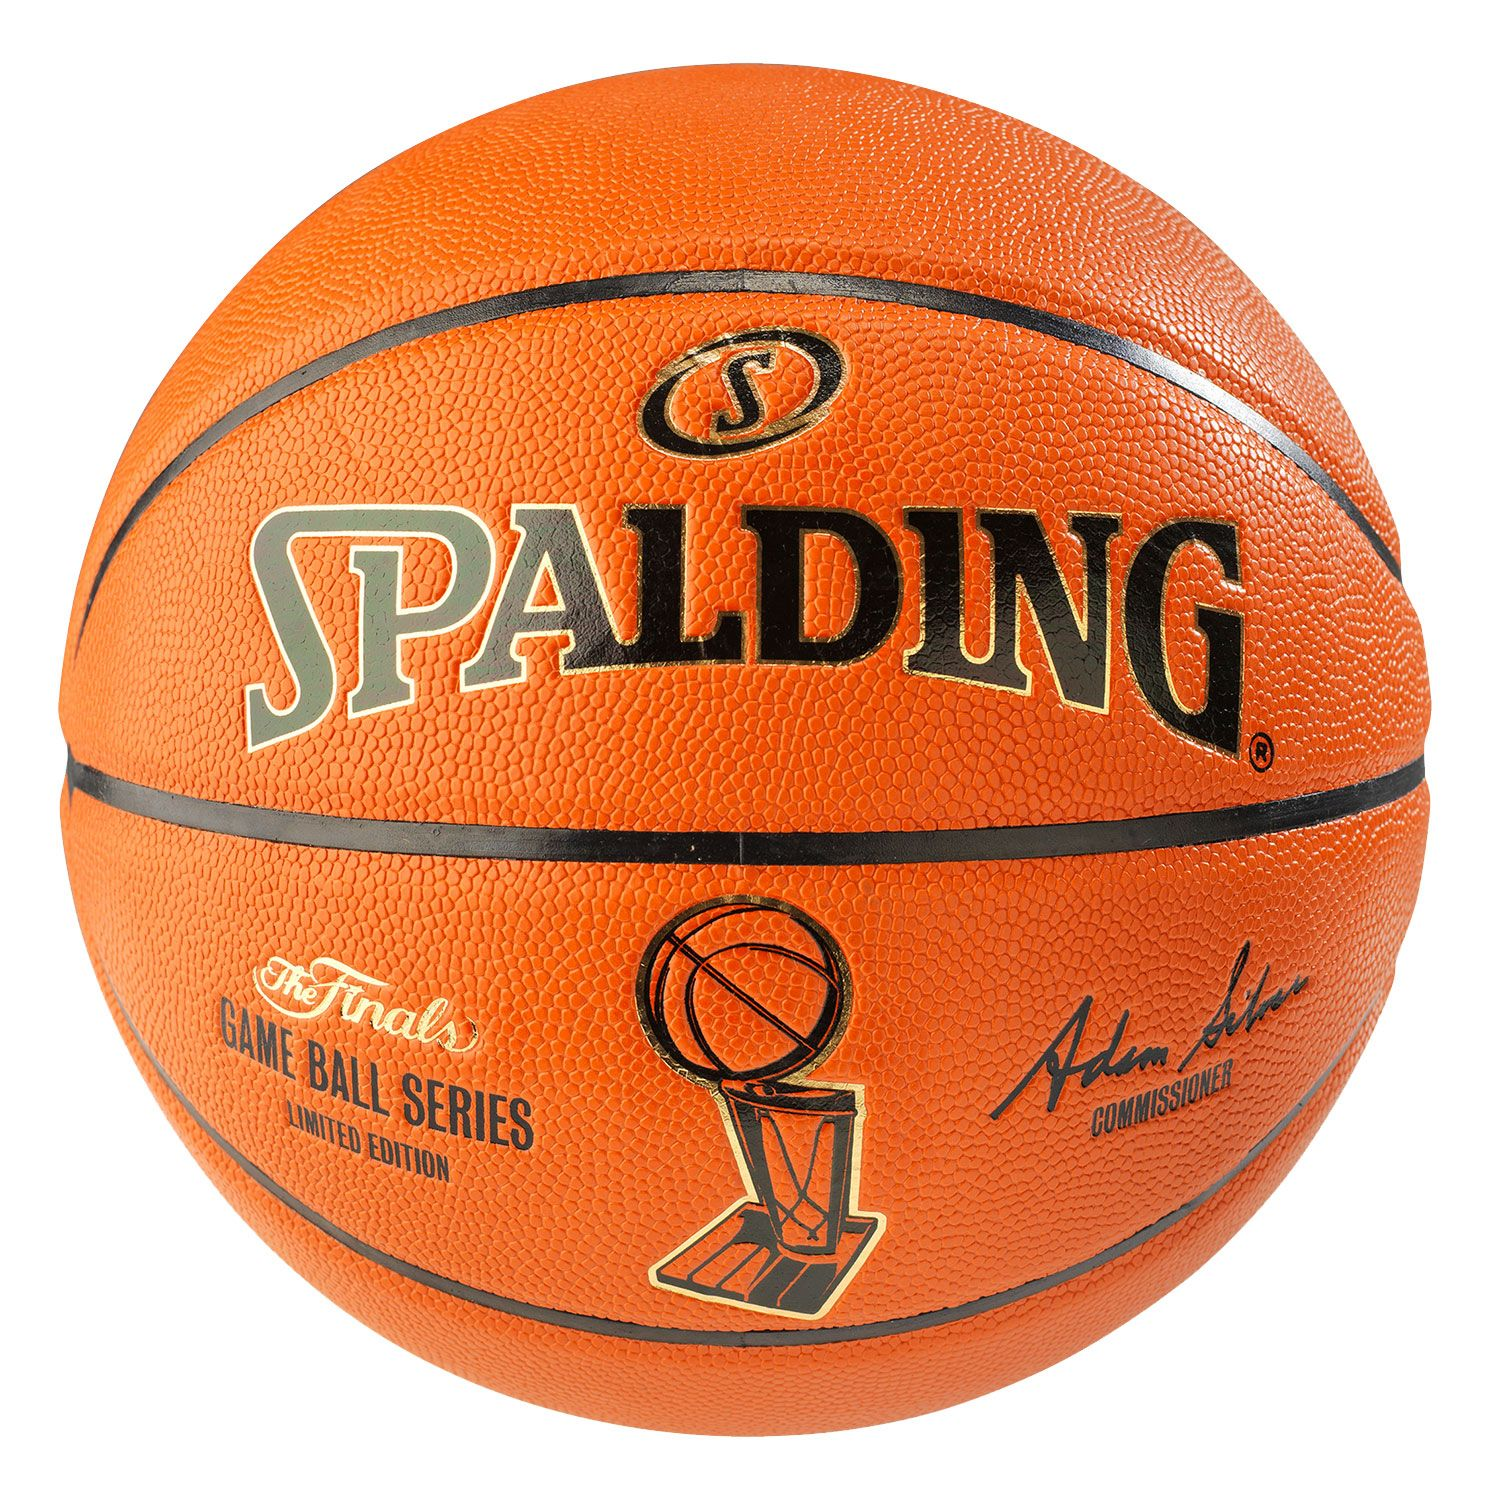 Spalding nba finals official basketball 29 5 dick 39 s sporting goods - Spalding basketball images ...